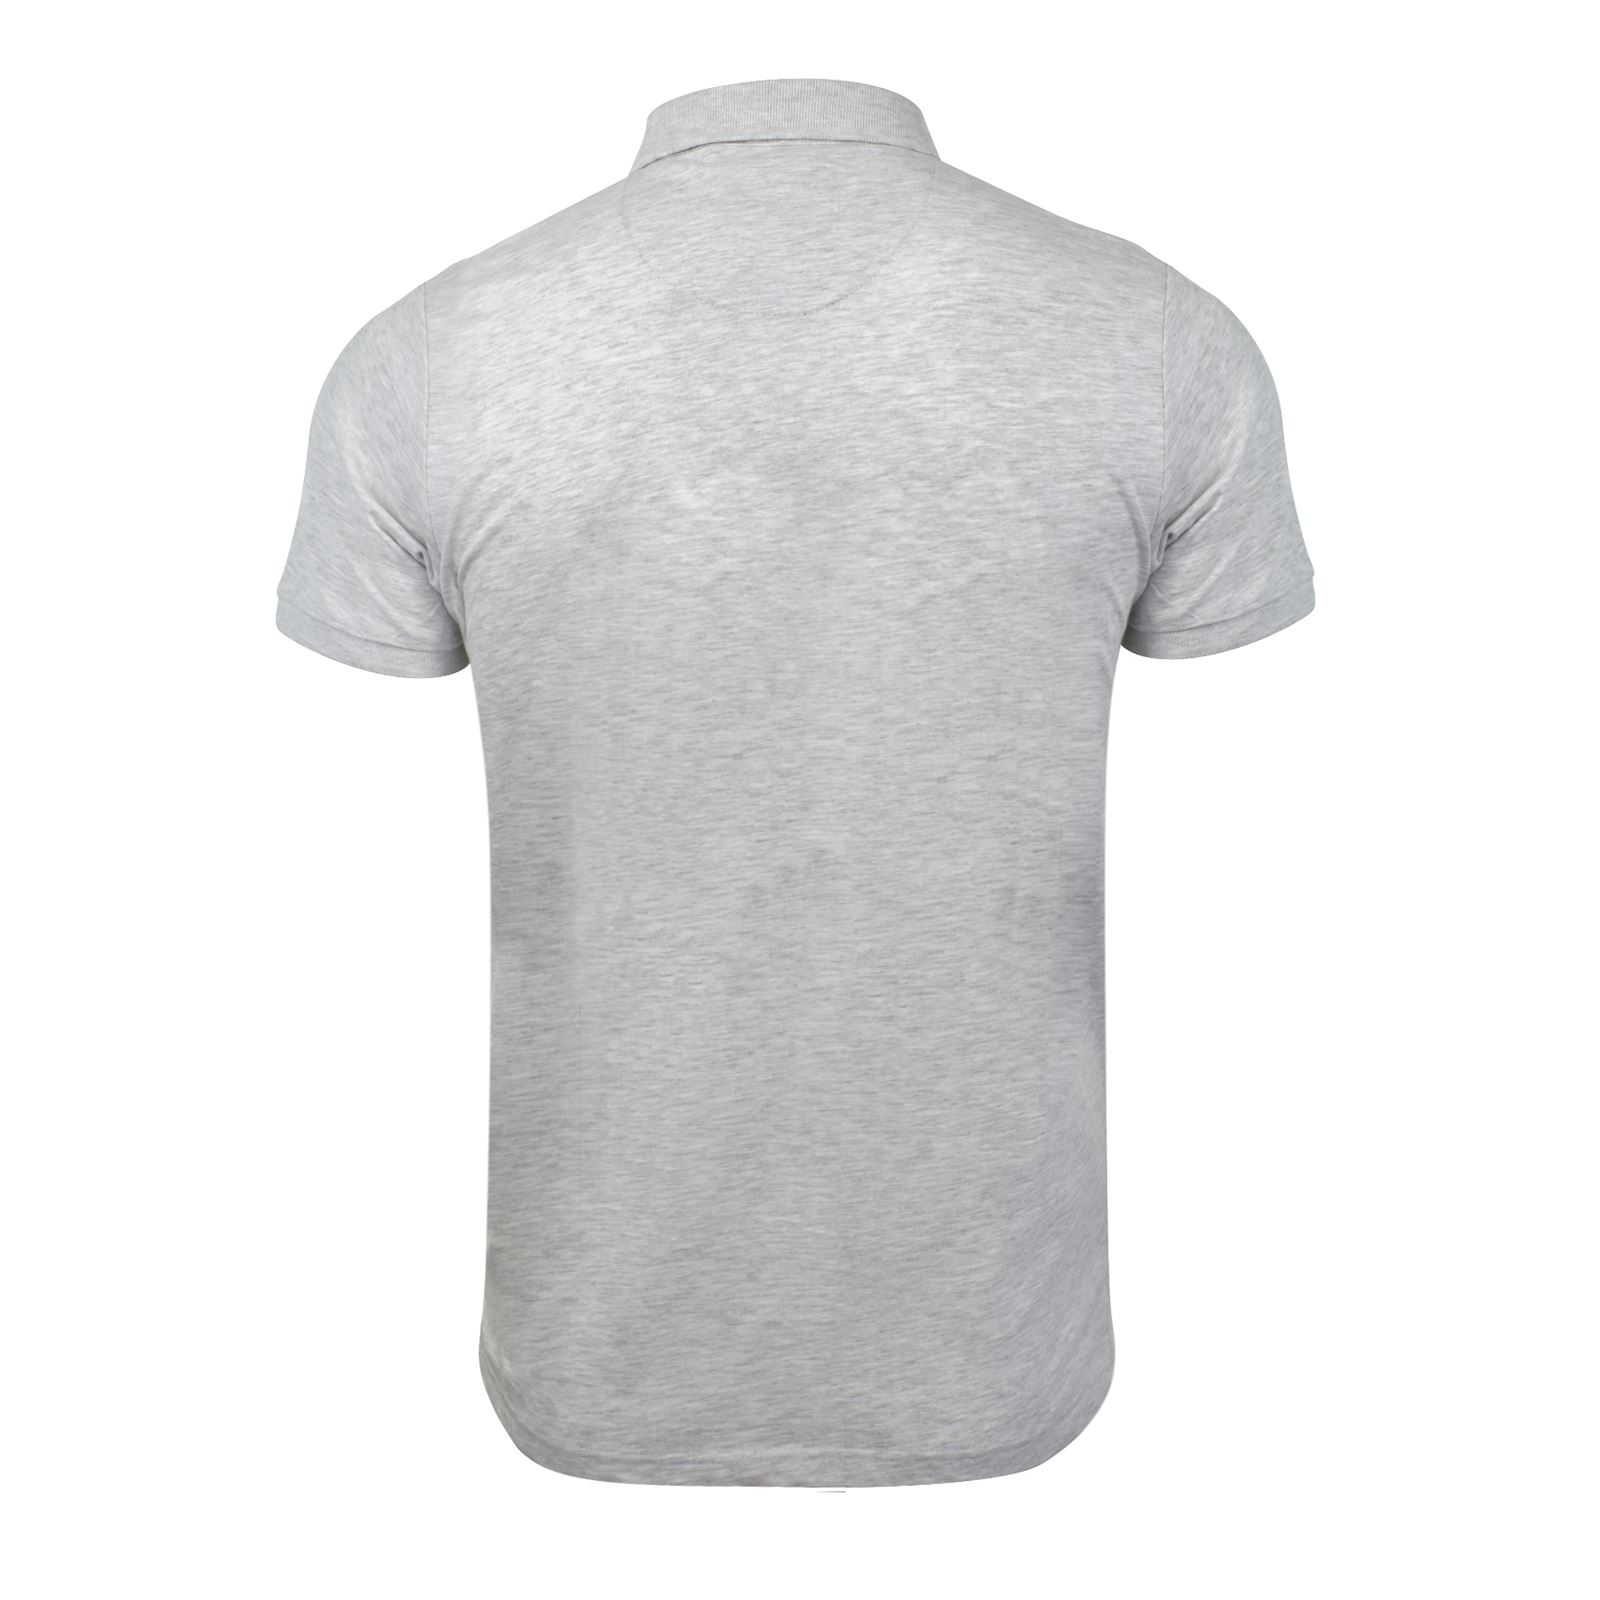 Mens-Polo-T-Shirt-Brave-Soul-Glover-Cotton-Collared-Short-Sleeve-Casual-Top thumbnail 58